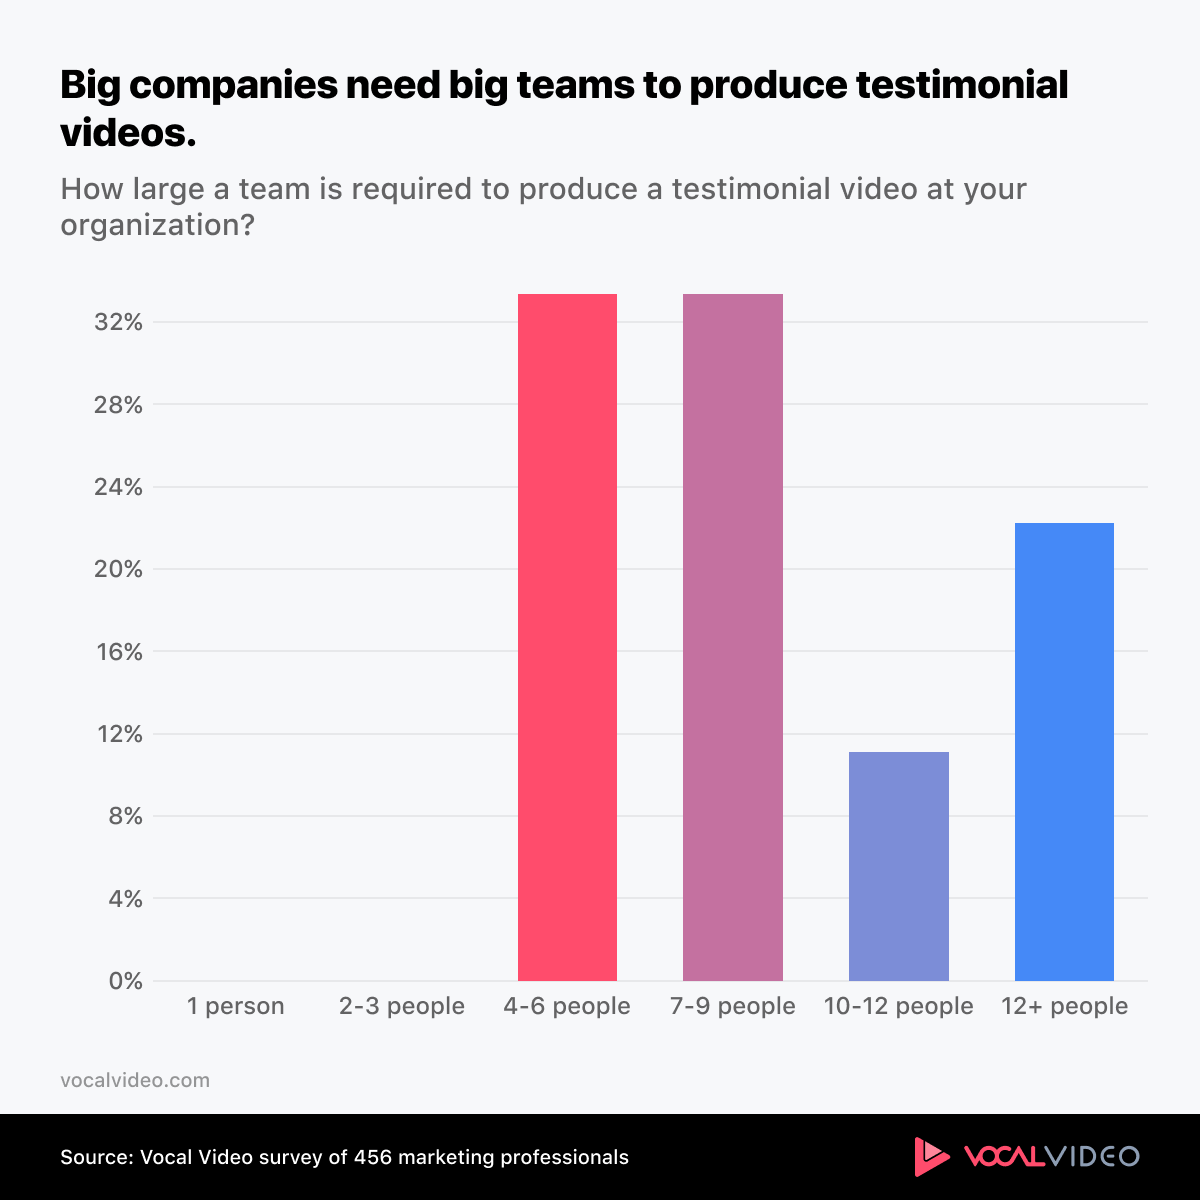 Chart showing that large companies need a minimum of 4 people to create a testimonial video.